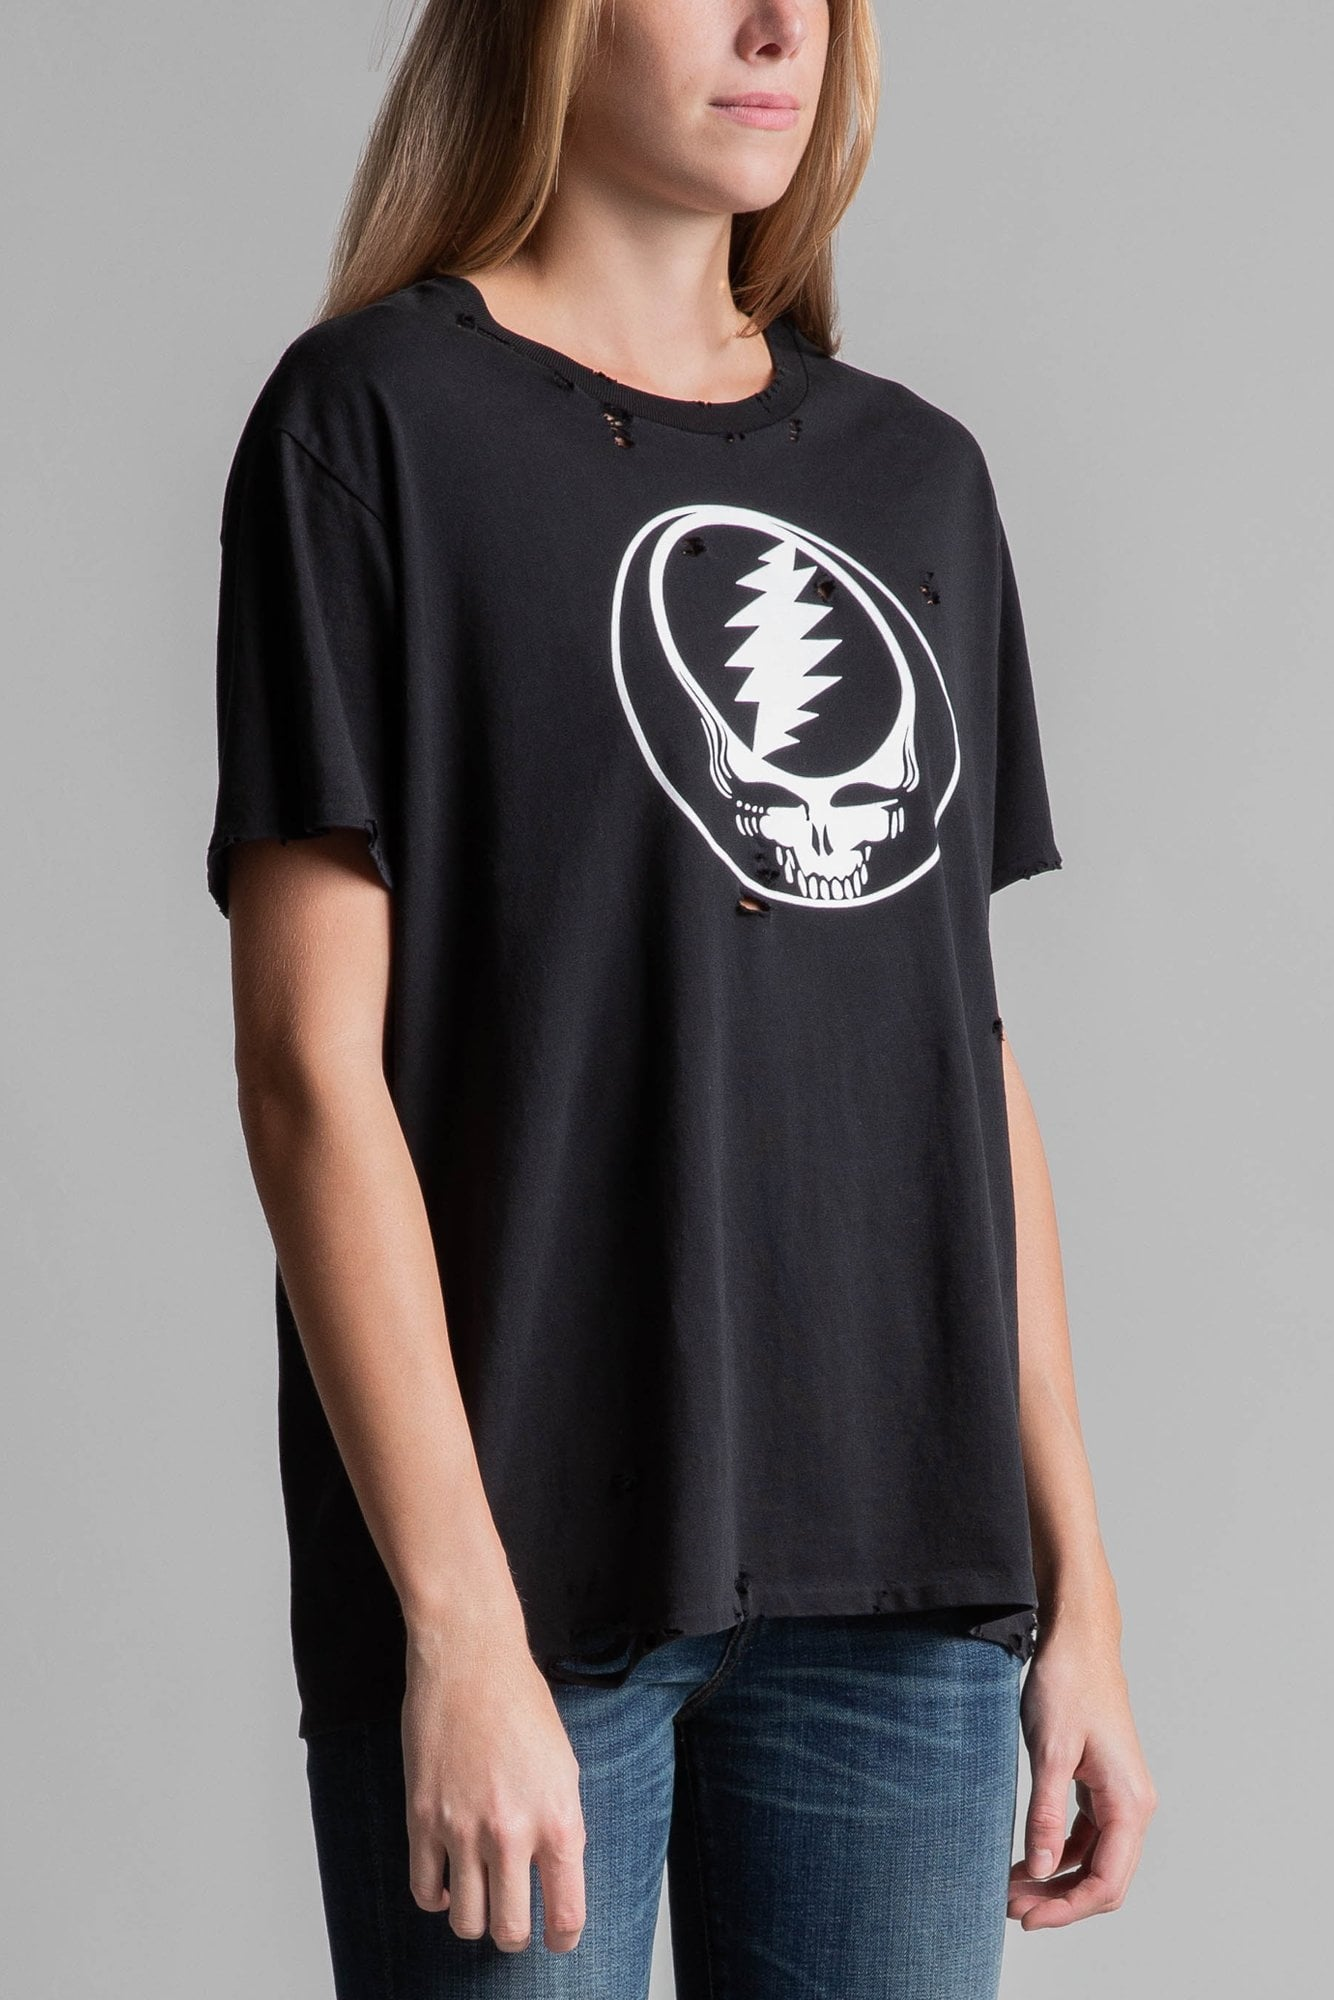 Steal Your Face Distressed Boy T- Black